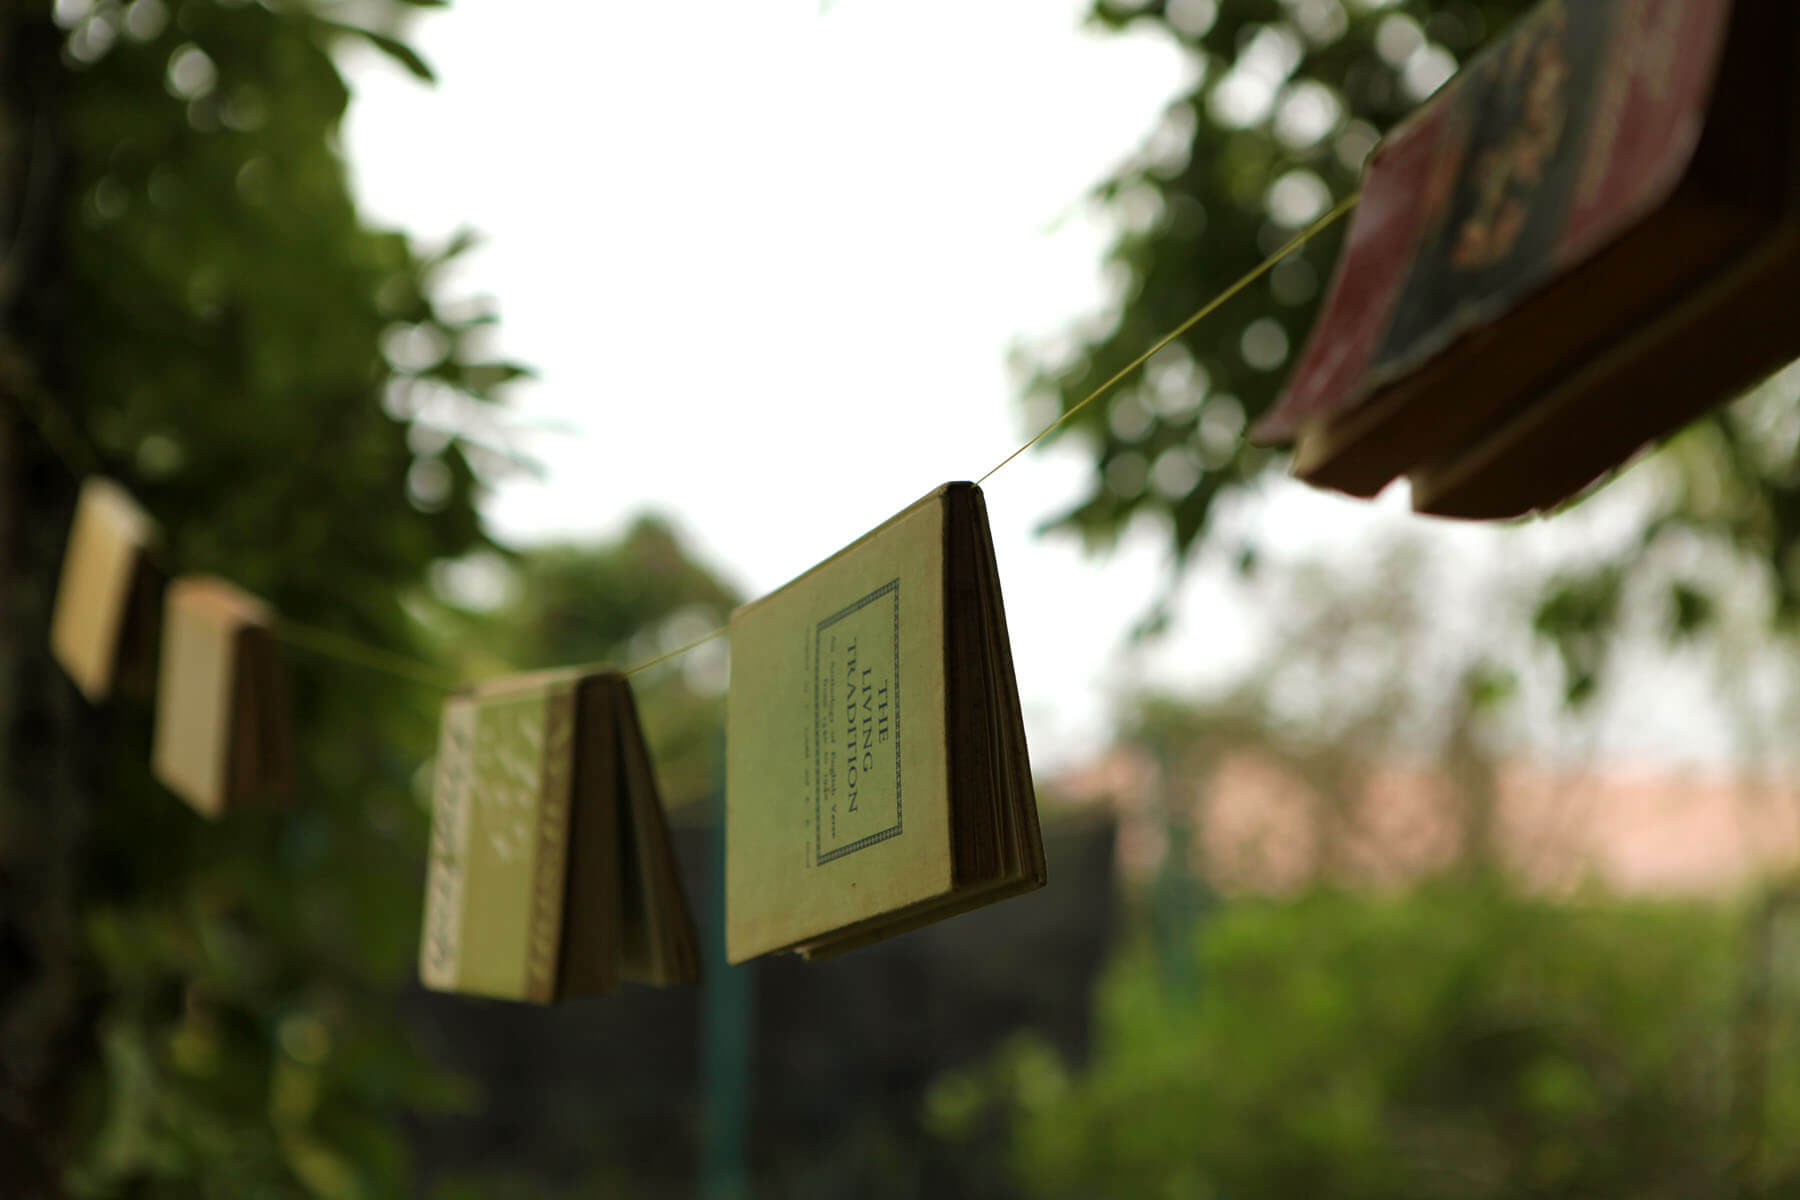 close-up-photo-of-book-hanging-on-clothes-line